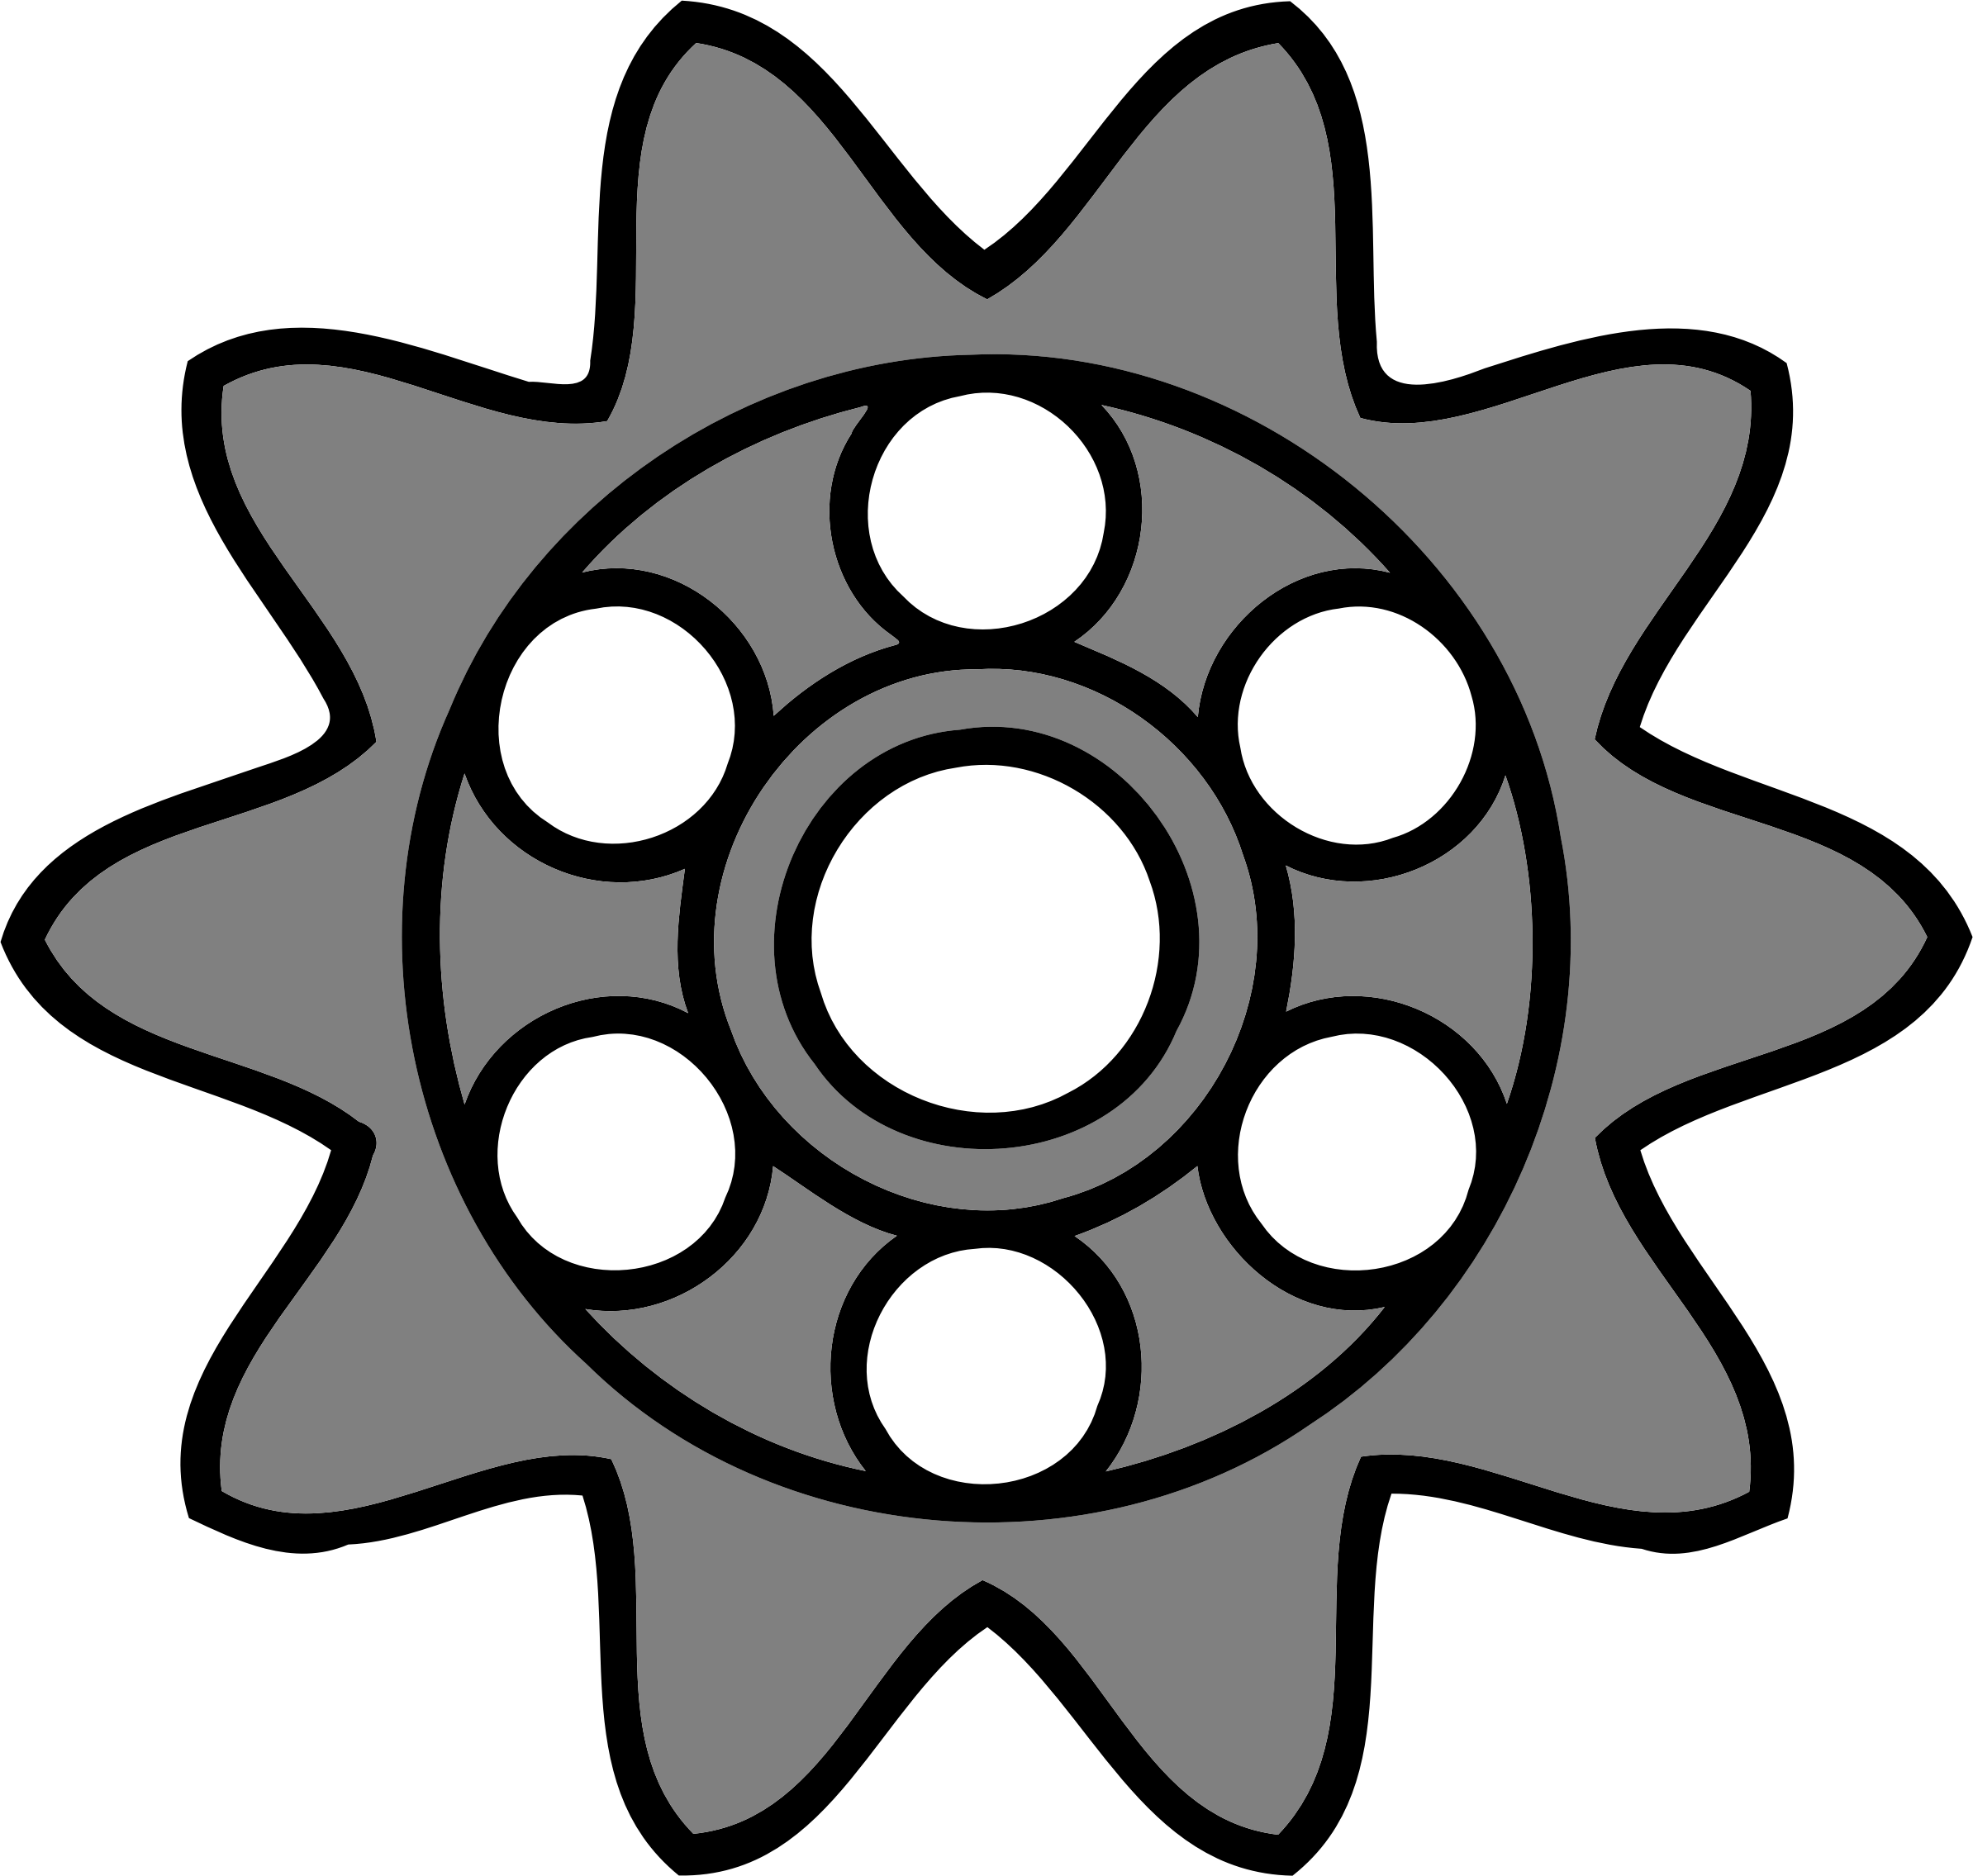 10-tooth gear with circular holes by Firkin